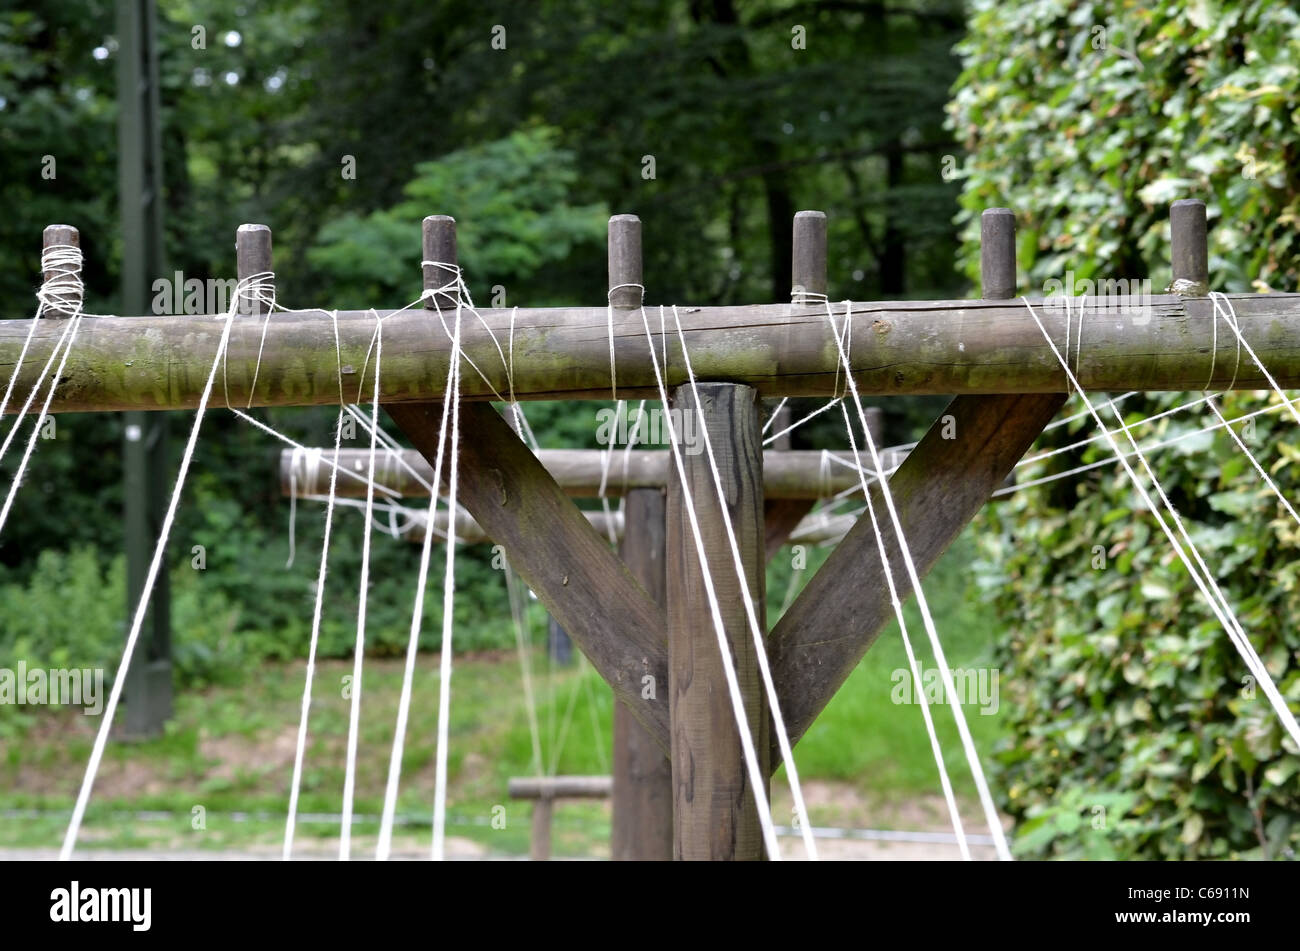 Open Air Museum, Threads - Stock Image